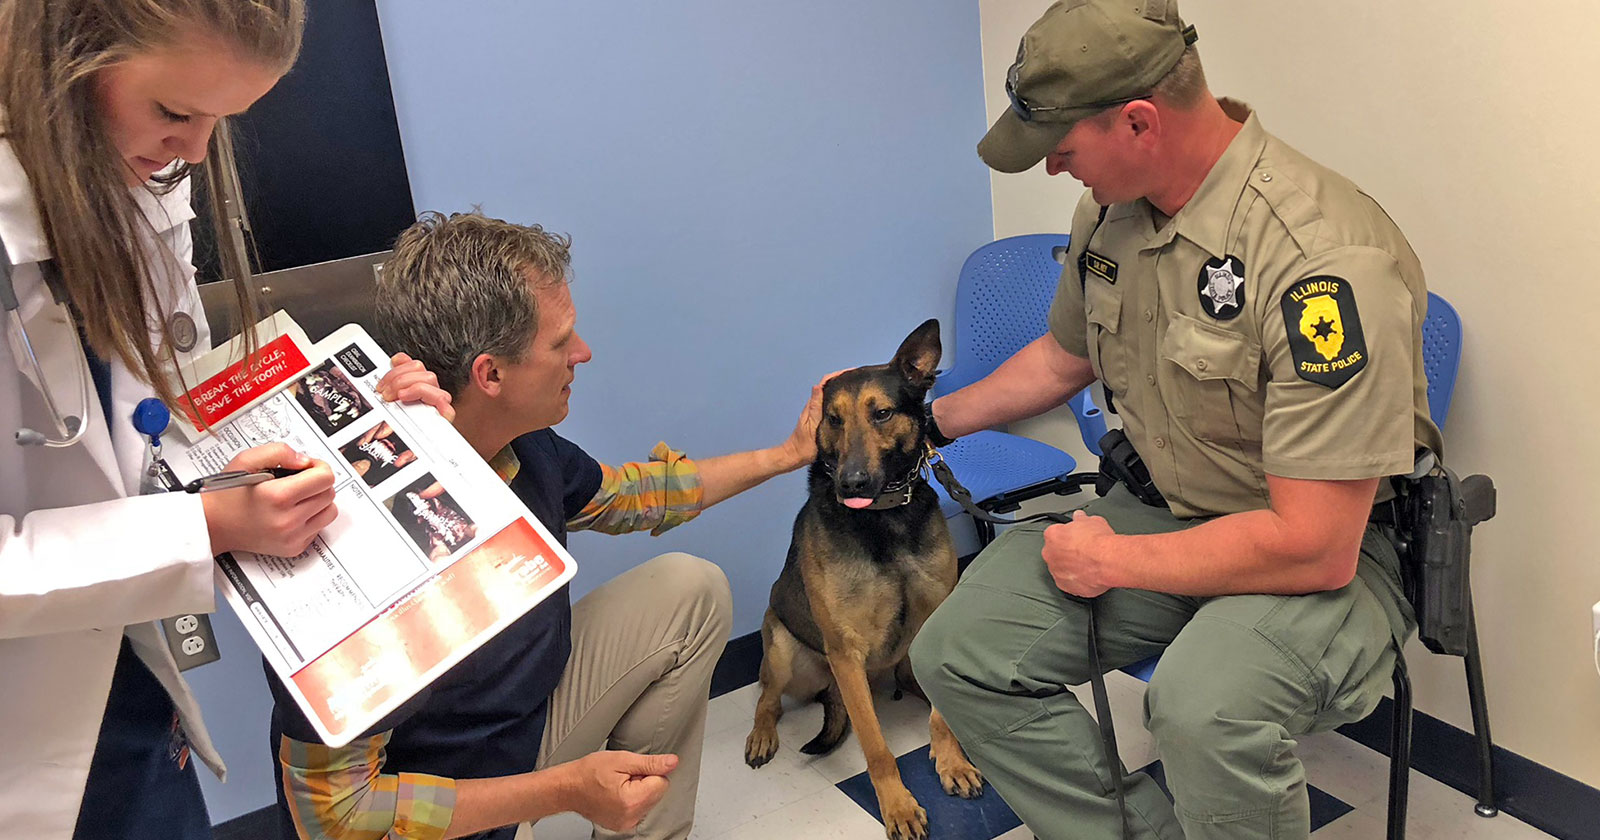 [Dr. Steve Juriga examines K9 officer Dax at the College of Veterinary Medicine in Illinois]